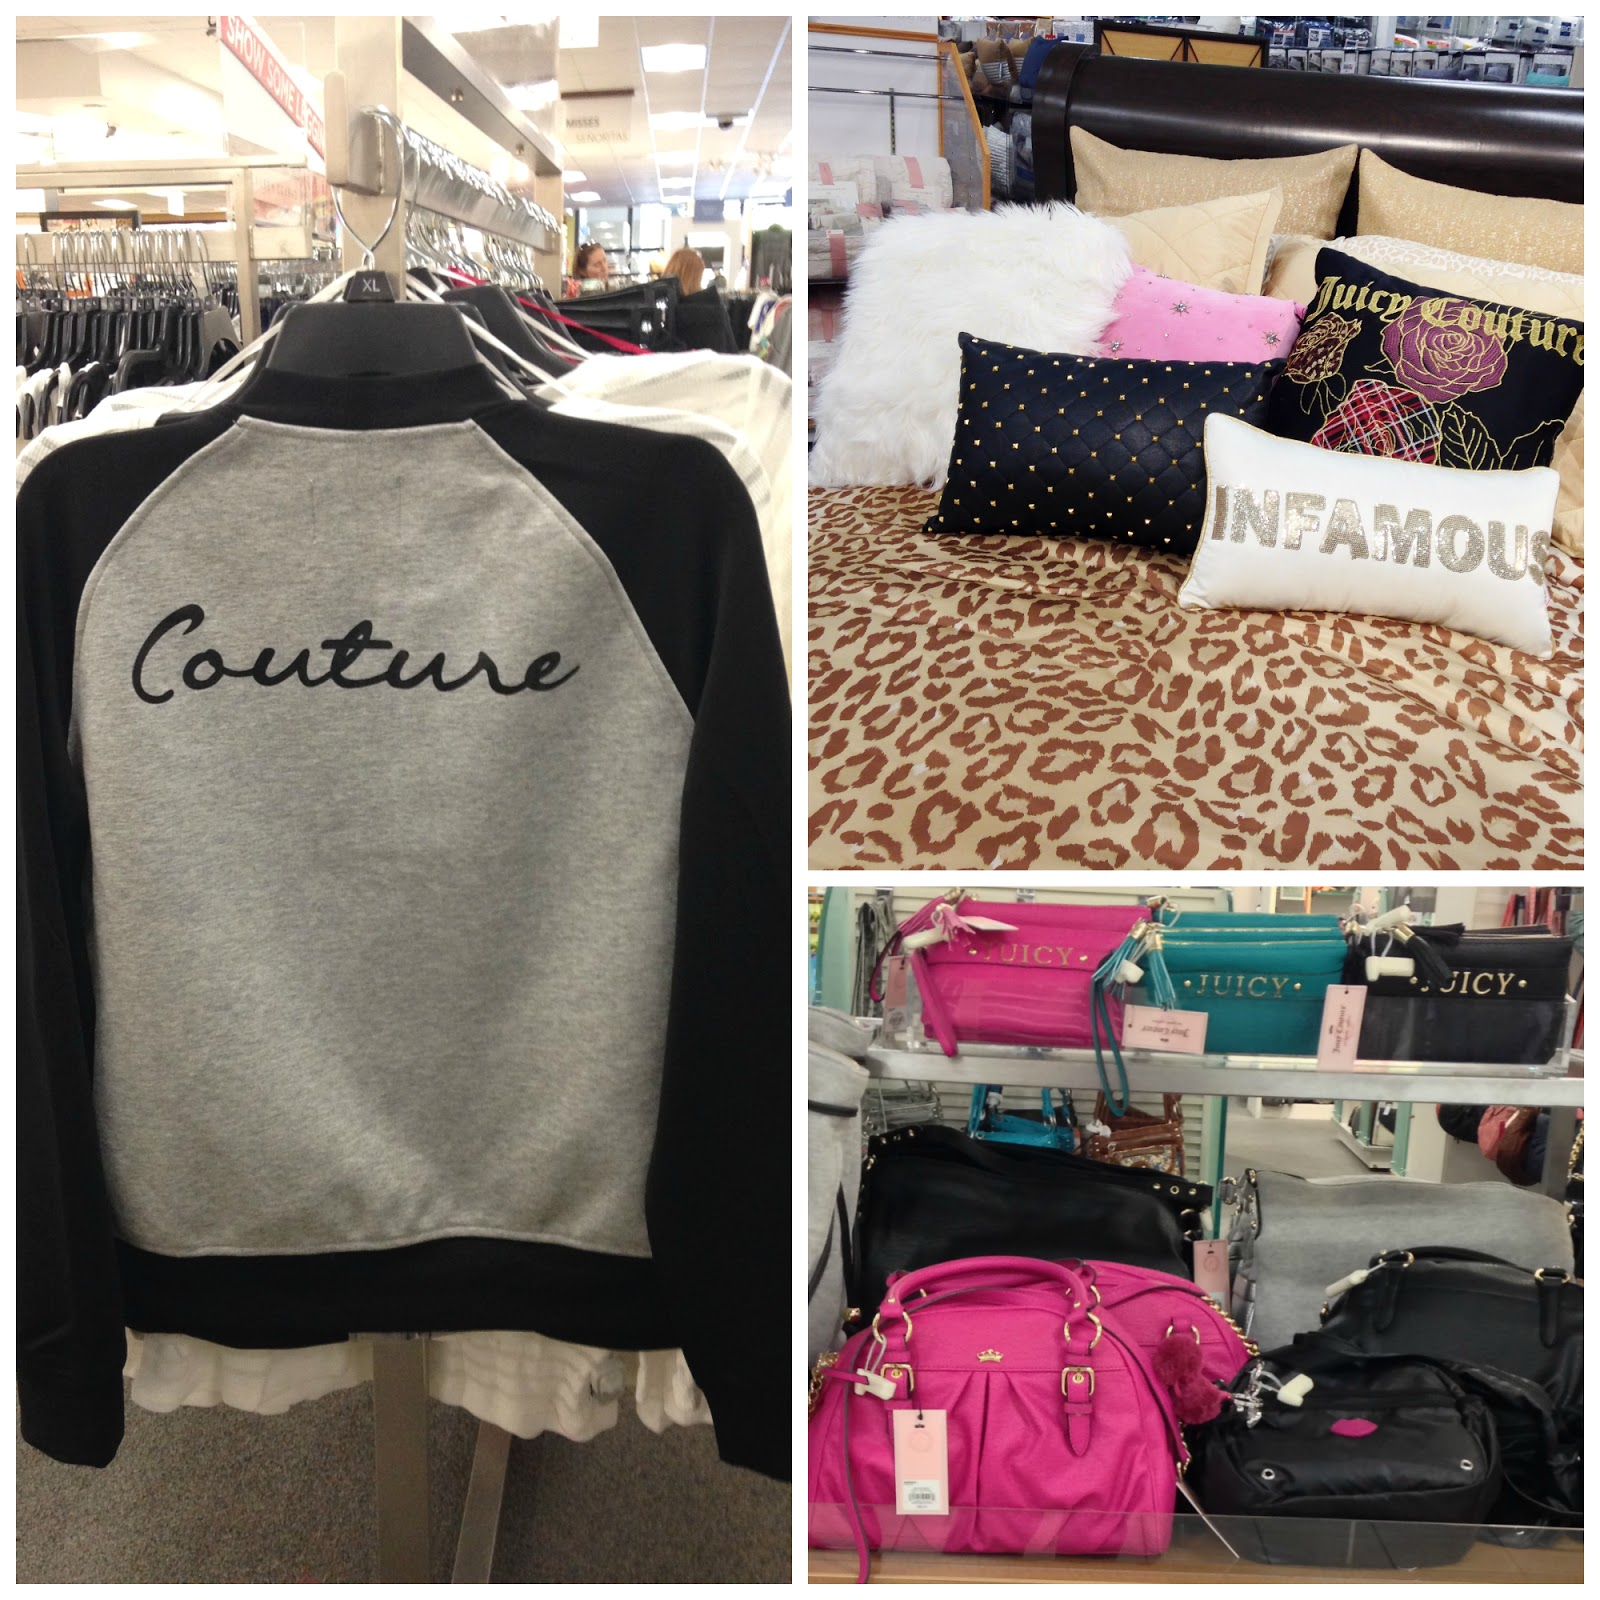 Juicy Couture At Kohls Pics My 5 Favorites